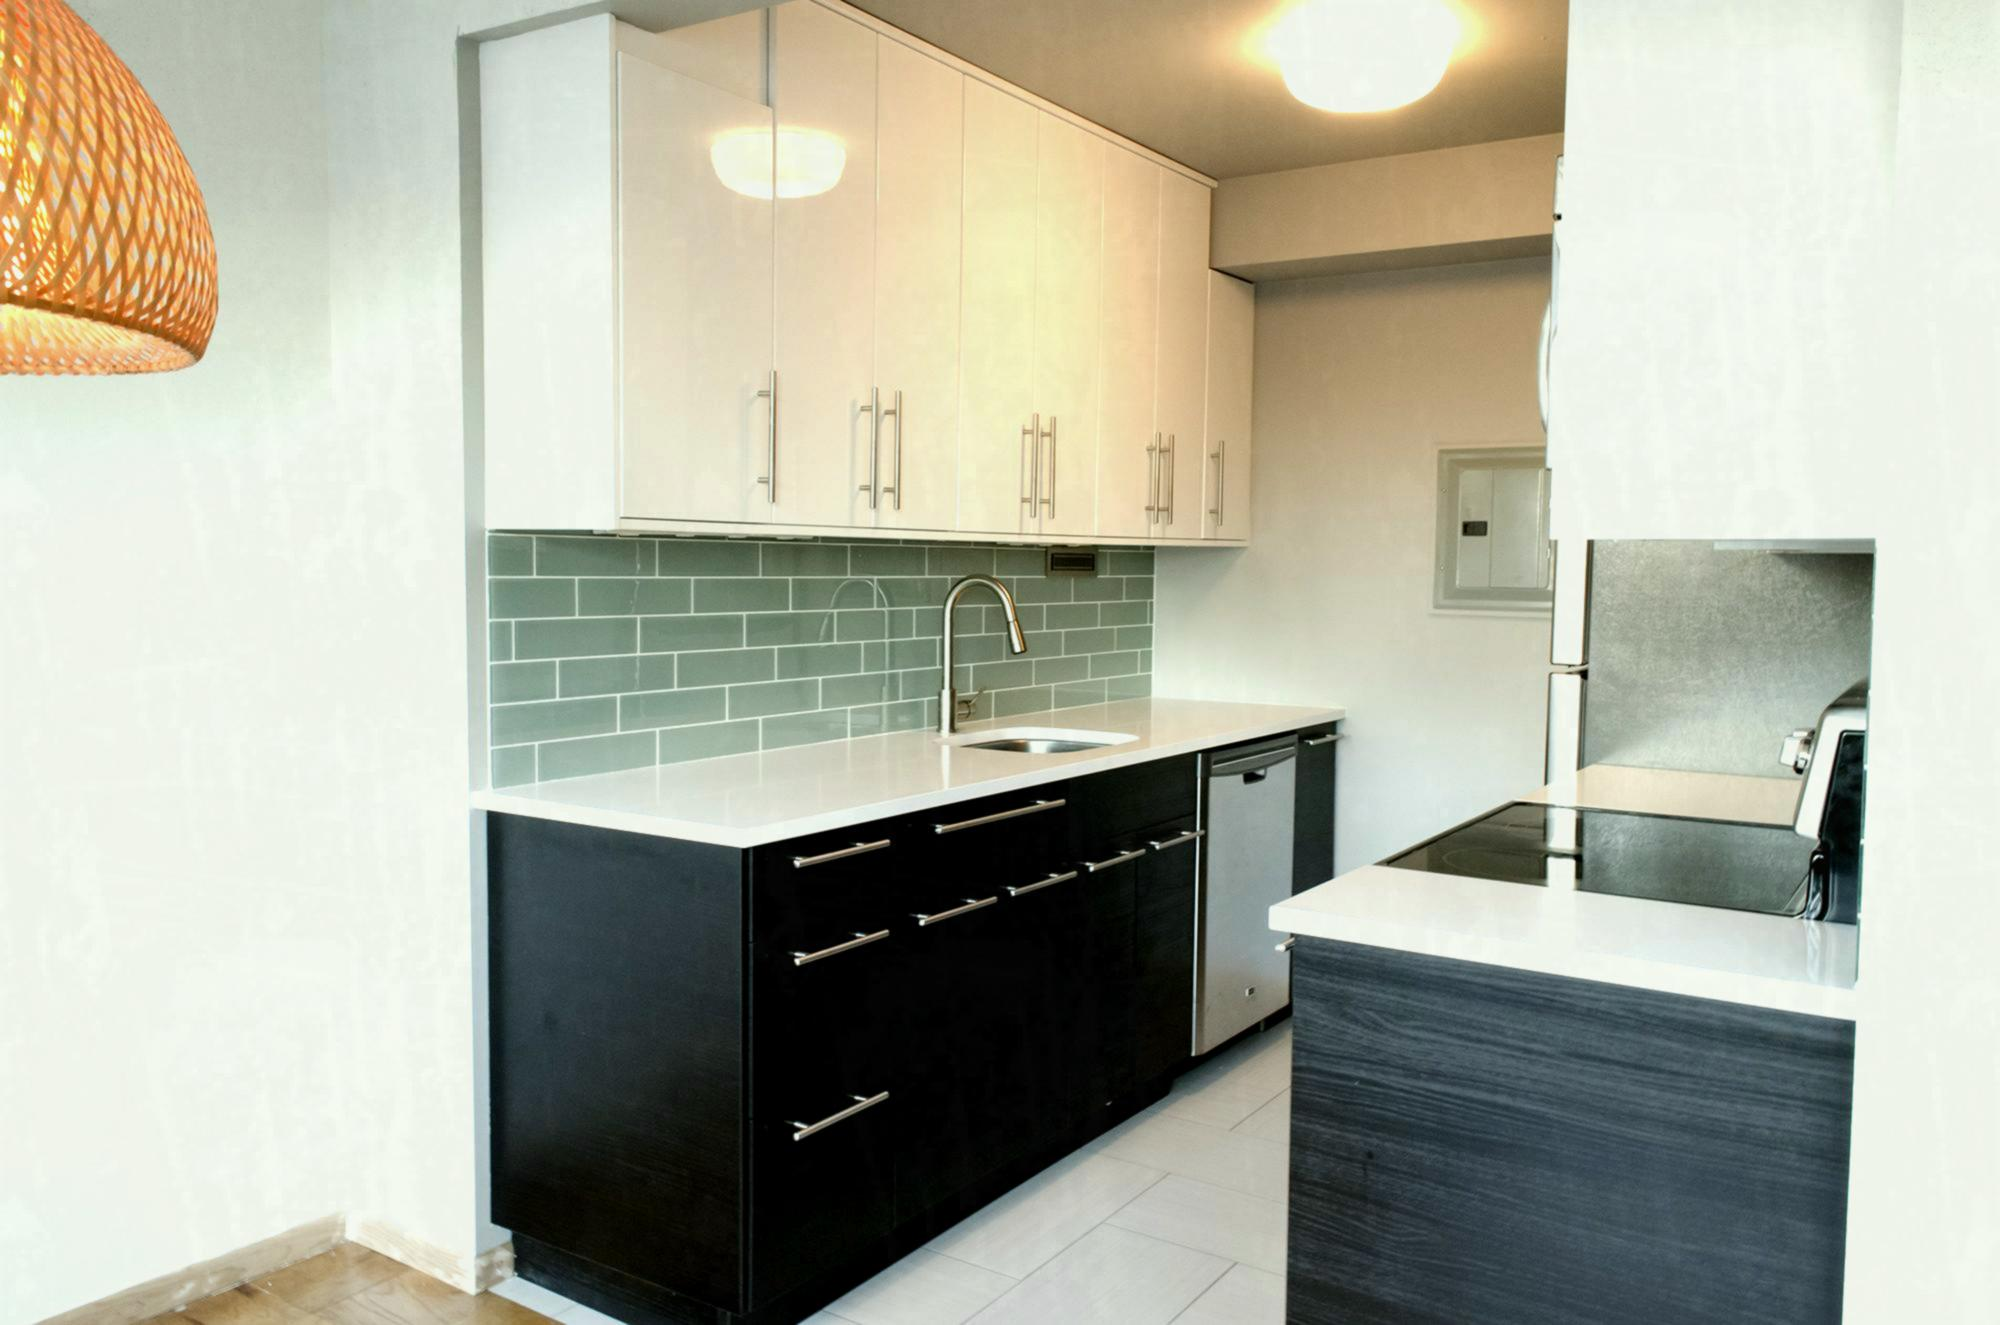 Kitchen Designs Layouts Kitchen Layout: IKEA Kitchen Layouts: Pros And Cons Of A Galley Kitchen